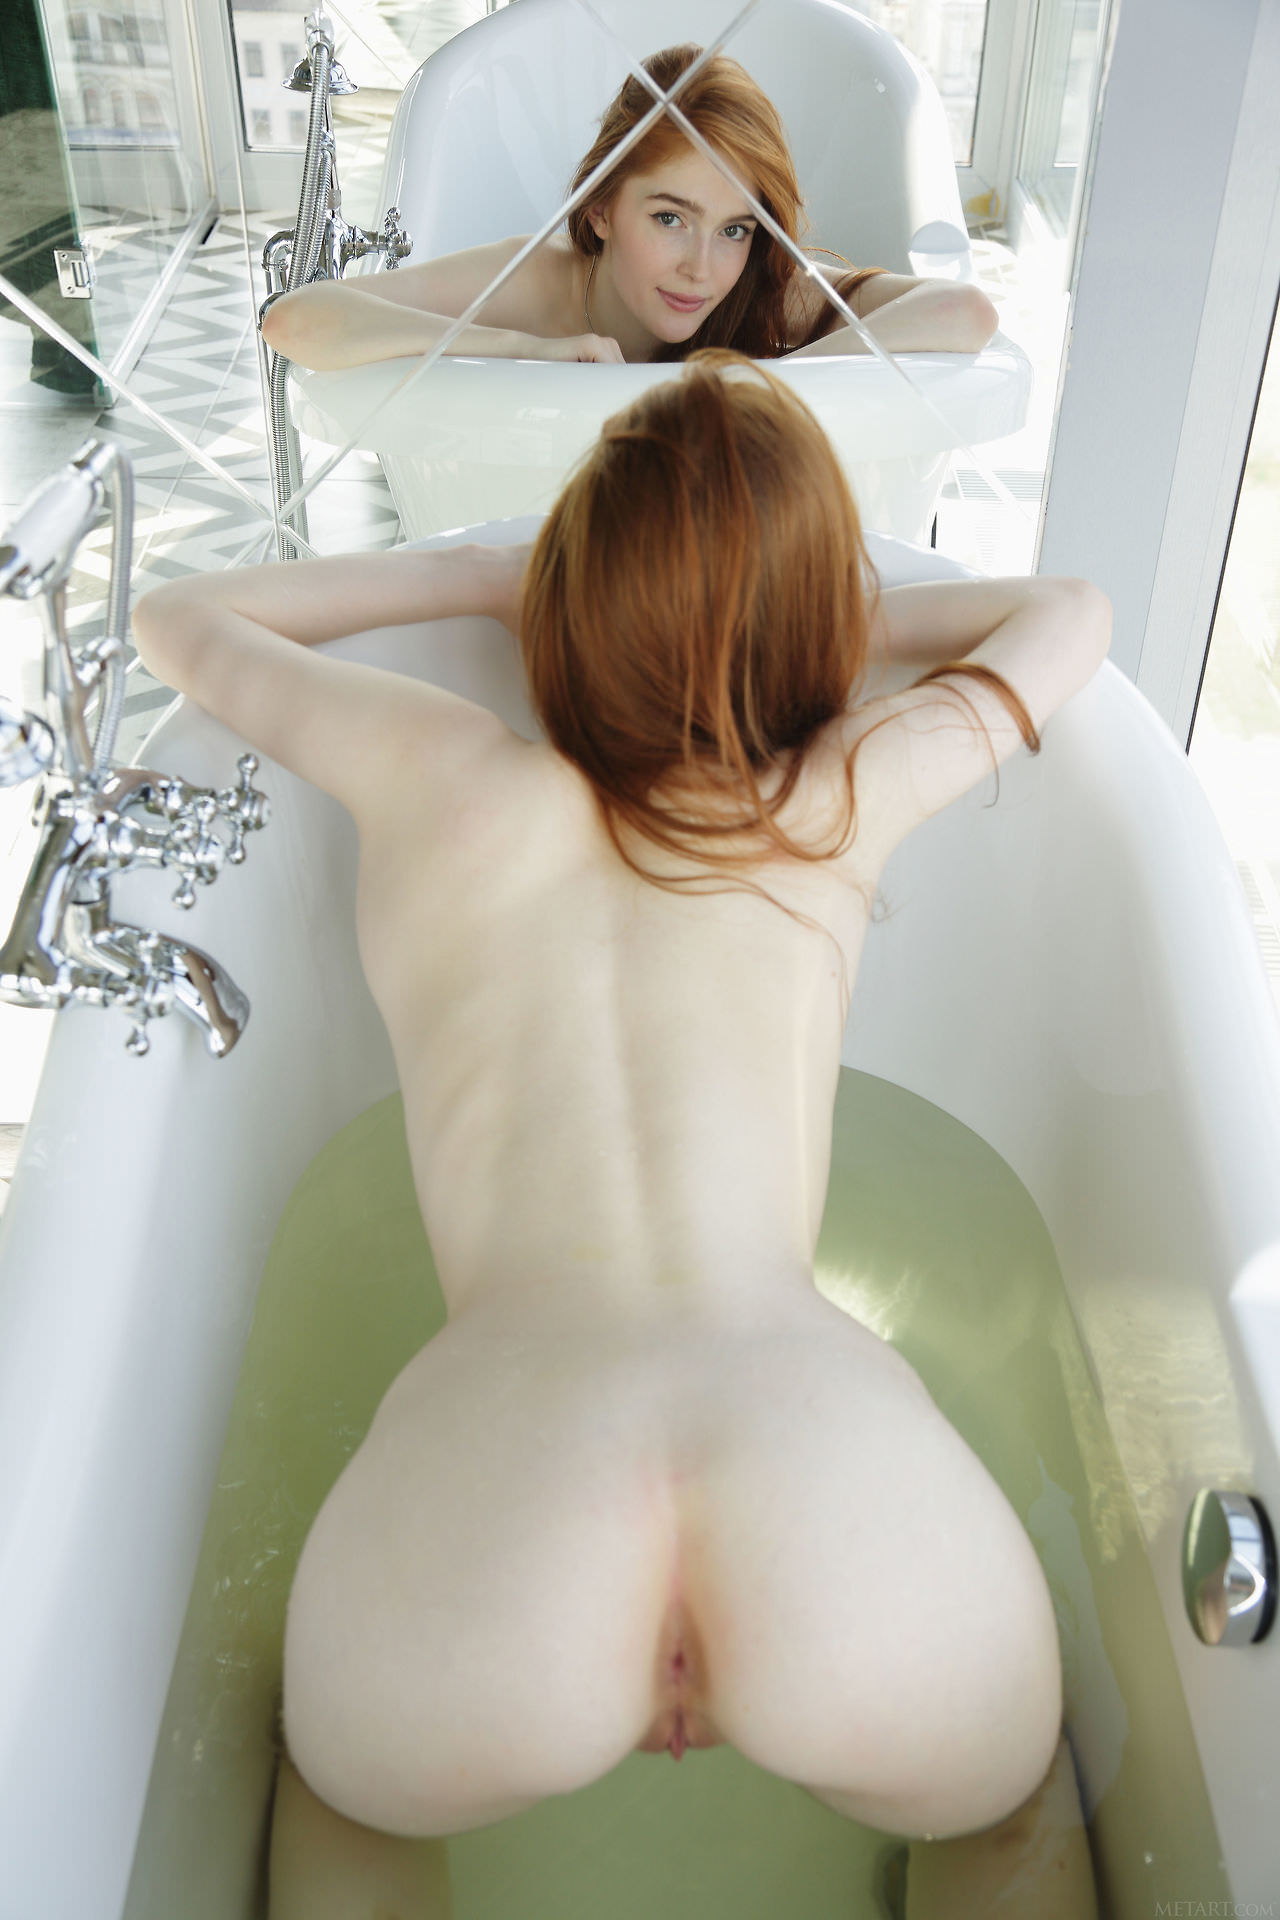 Pale babe playing with olive skin beauty - 2 part 8